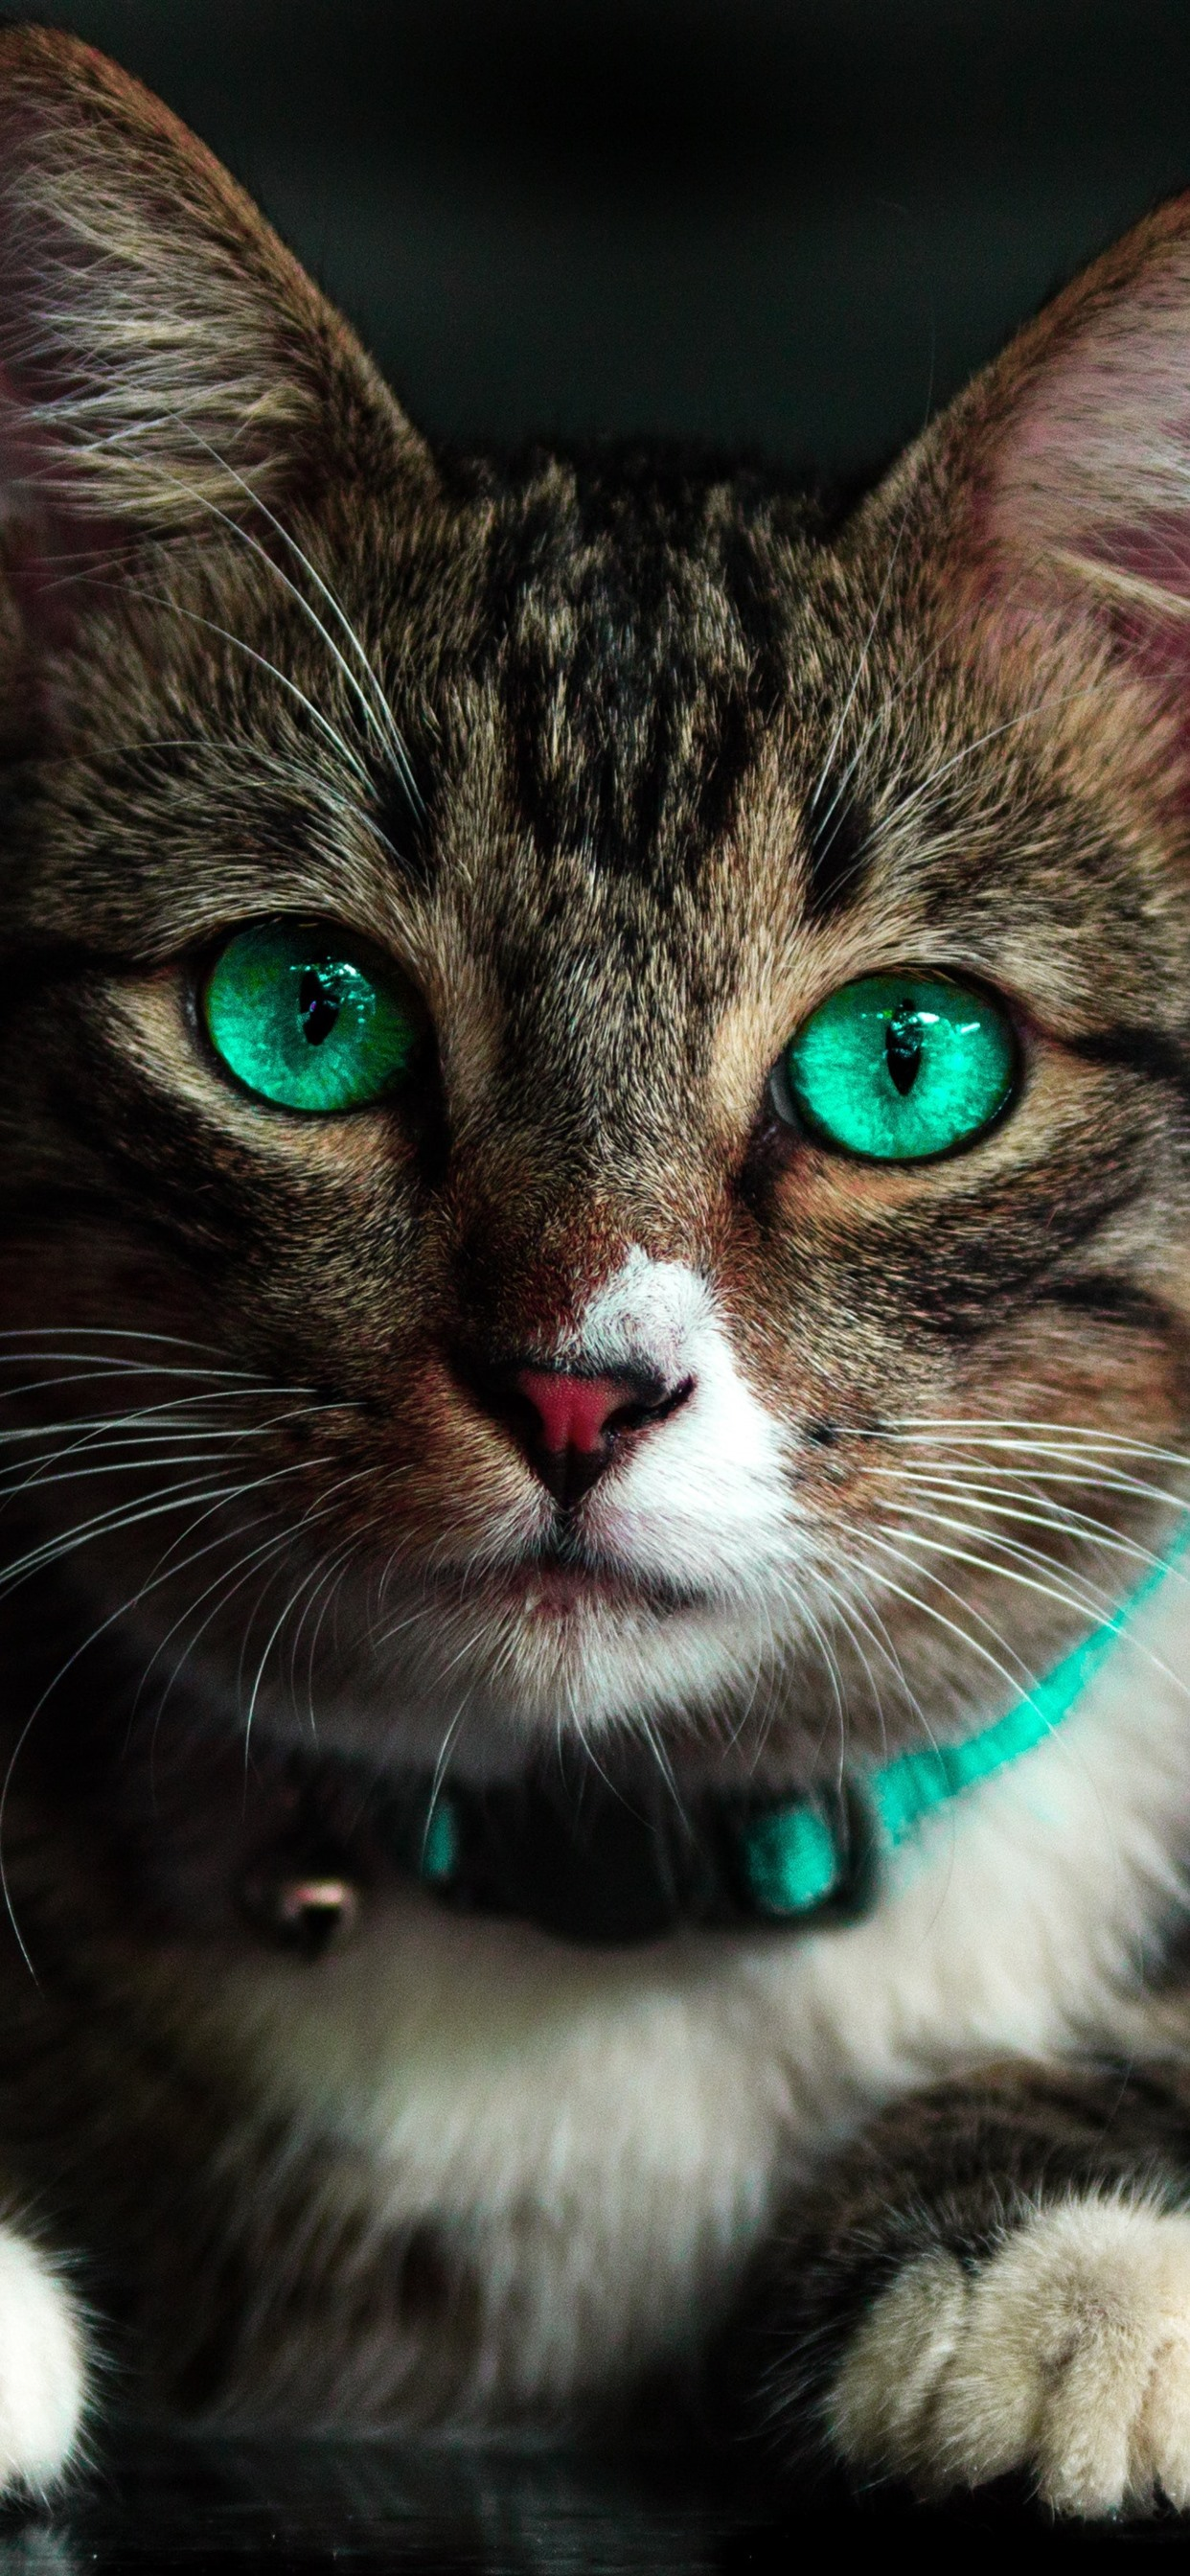 Cute Cat Look At You Face Green Eyes 1242x2688 Iphone 11 Pro Xs Max Wallpaper Background Picture Image